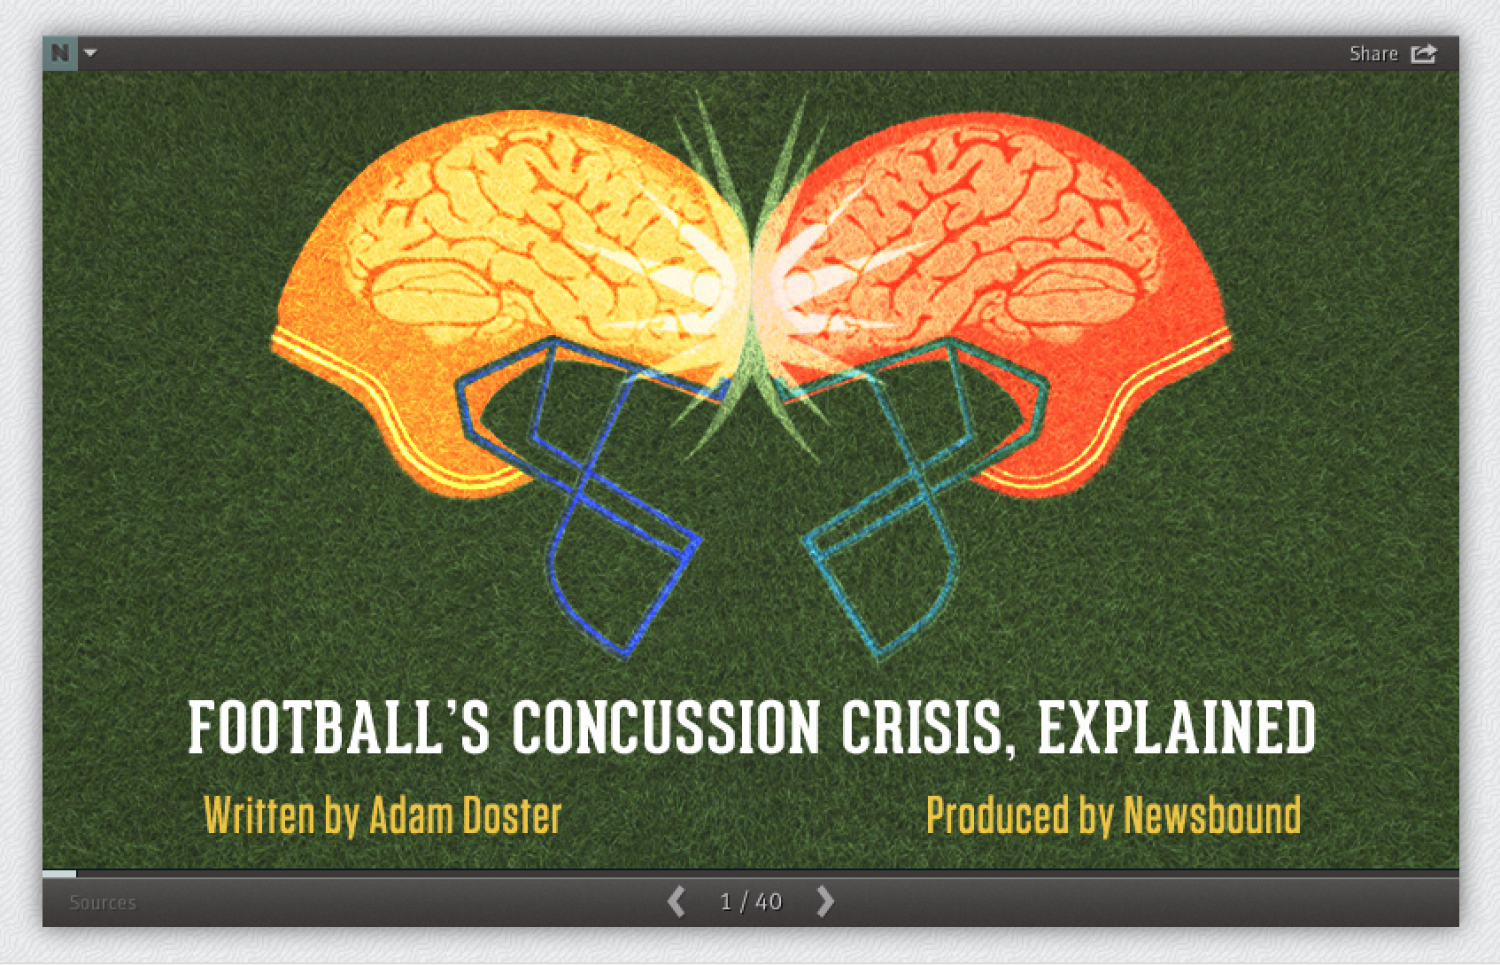 Football's Concussion Crisis, Explained Infographic